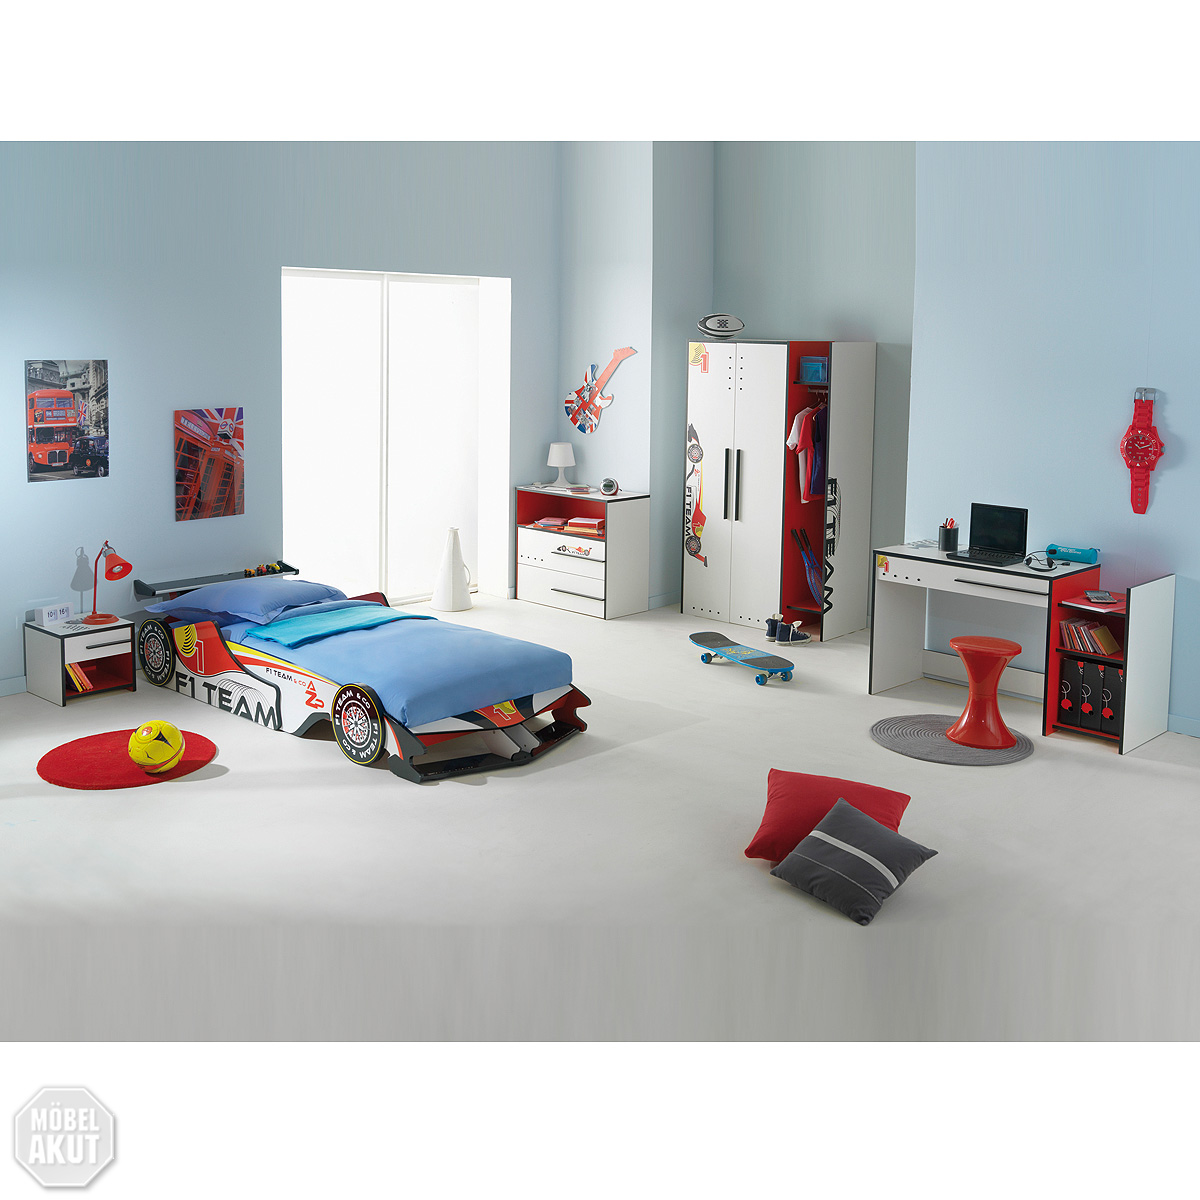 kinderzimmer fast komplett set led lattenrost f1 team jugendzimmer neu ebay. Black Bedroom Furniture Sets. Home Design Ideas